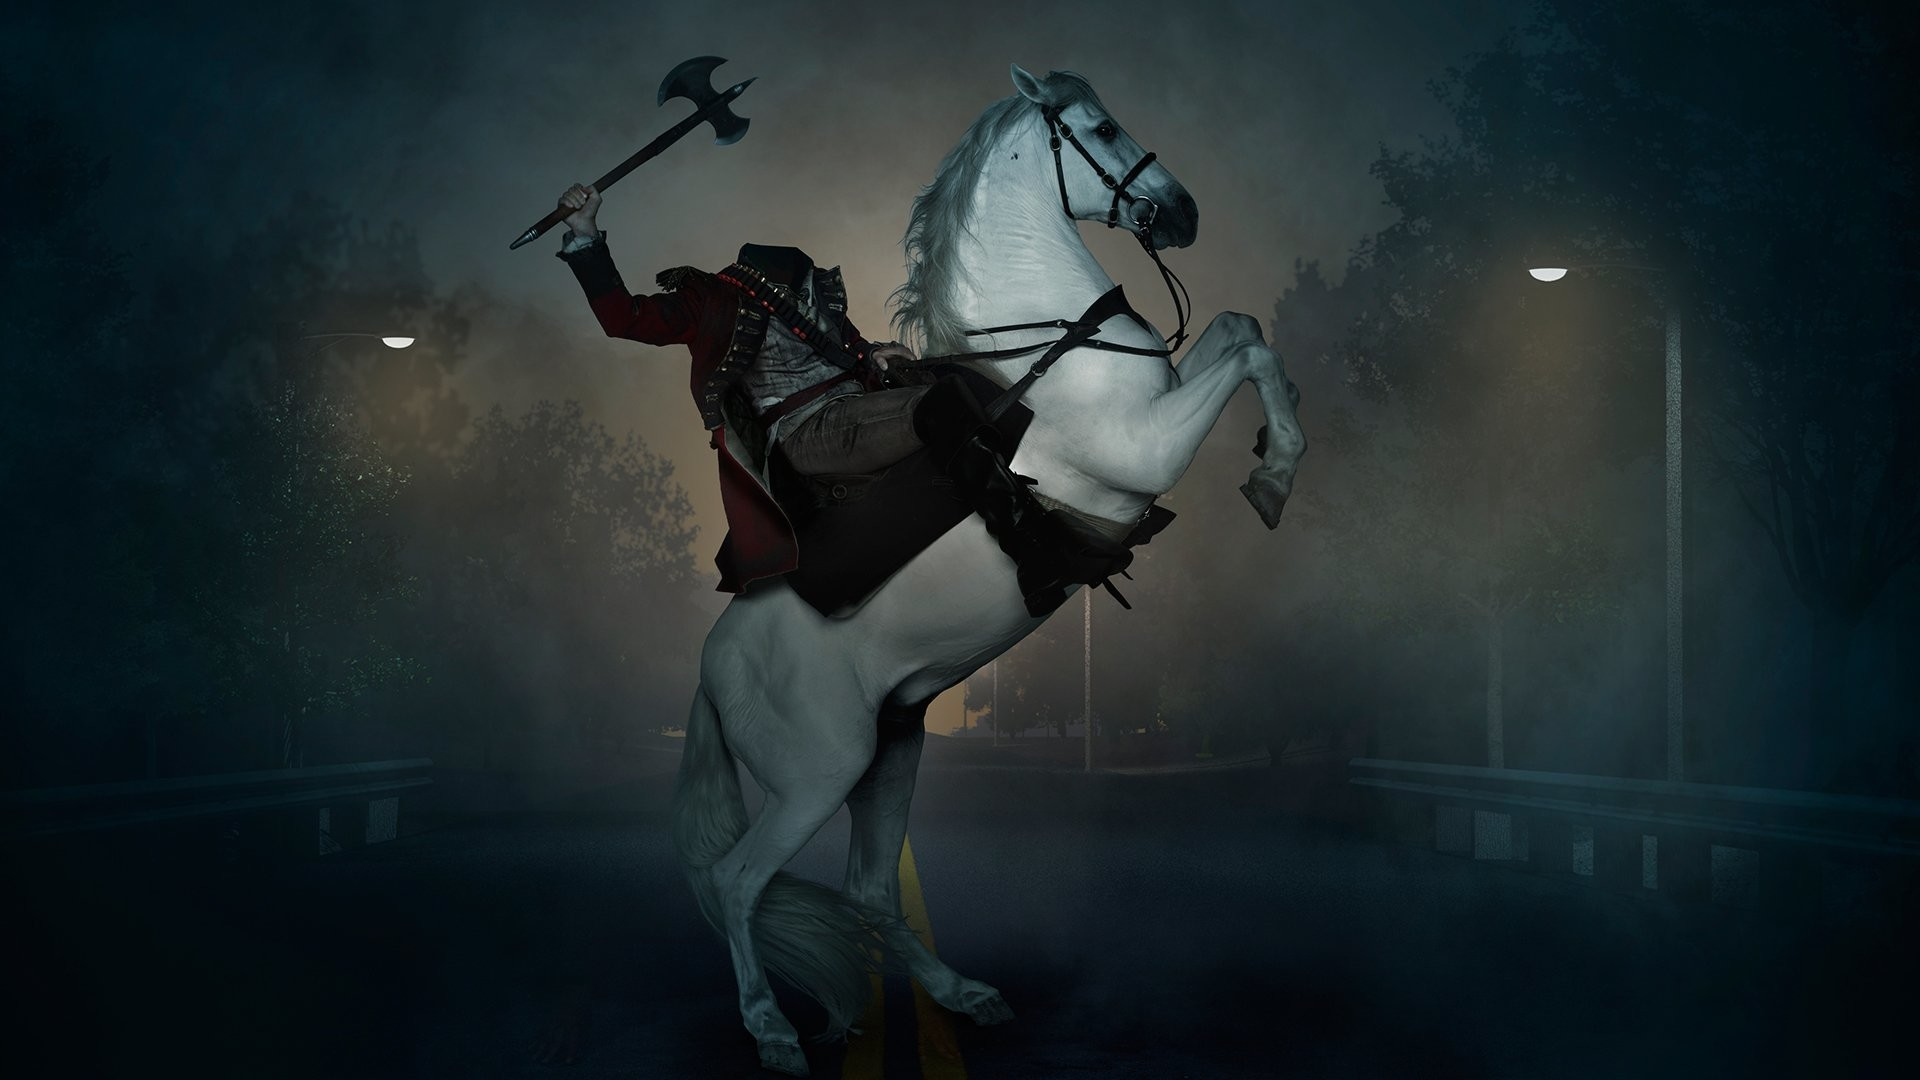 1920x1080 TV Show - Sleepy Hollow Headless Horseman Horse Dark Wallpaper